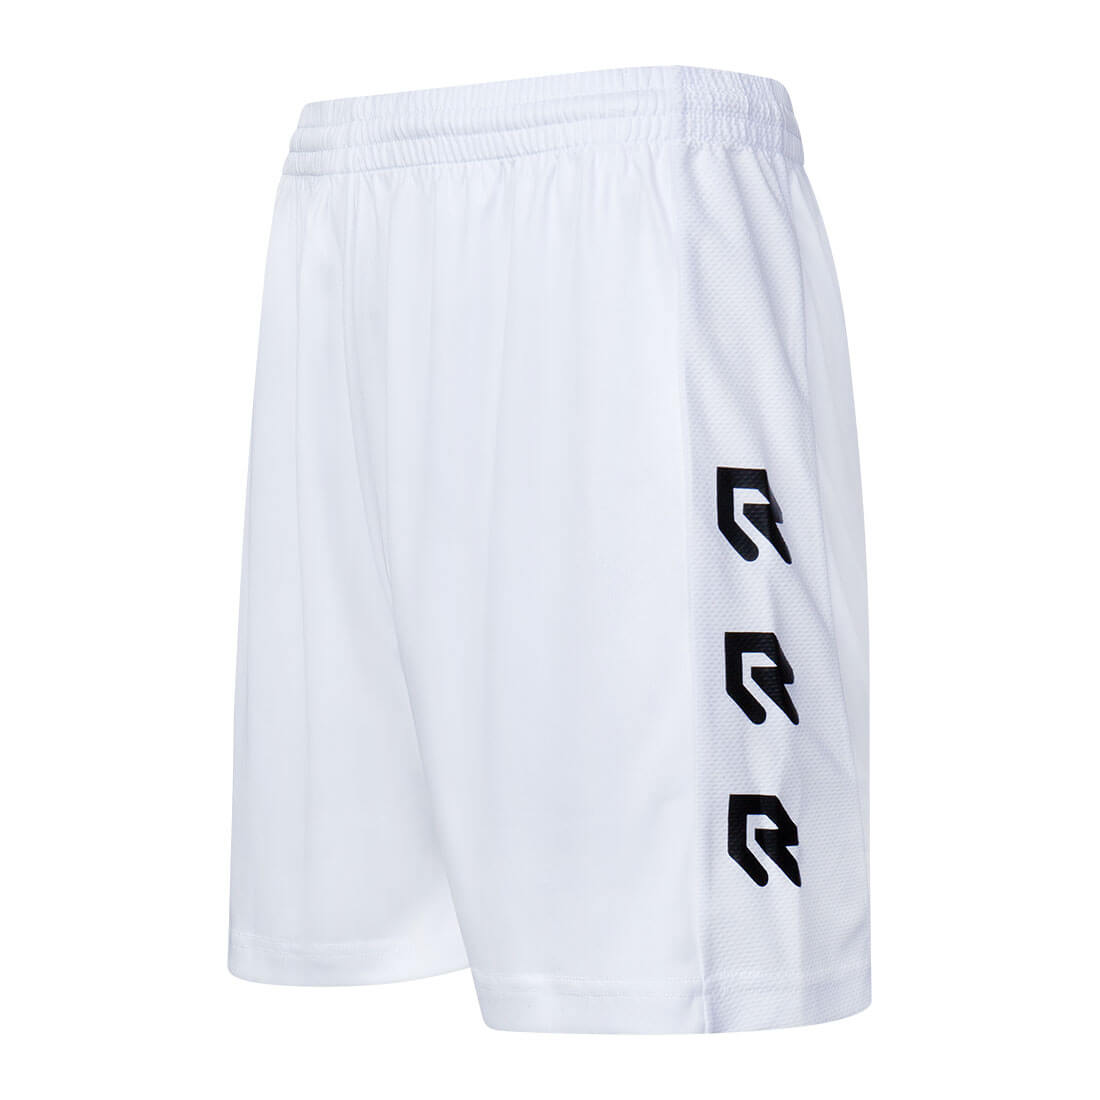 Robey Performance Short - White